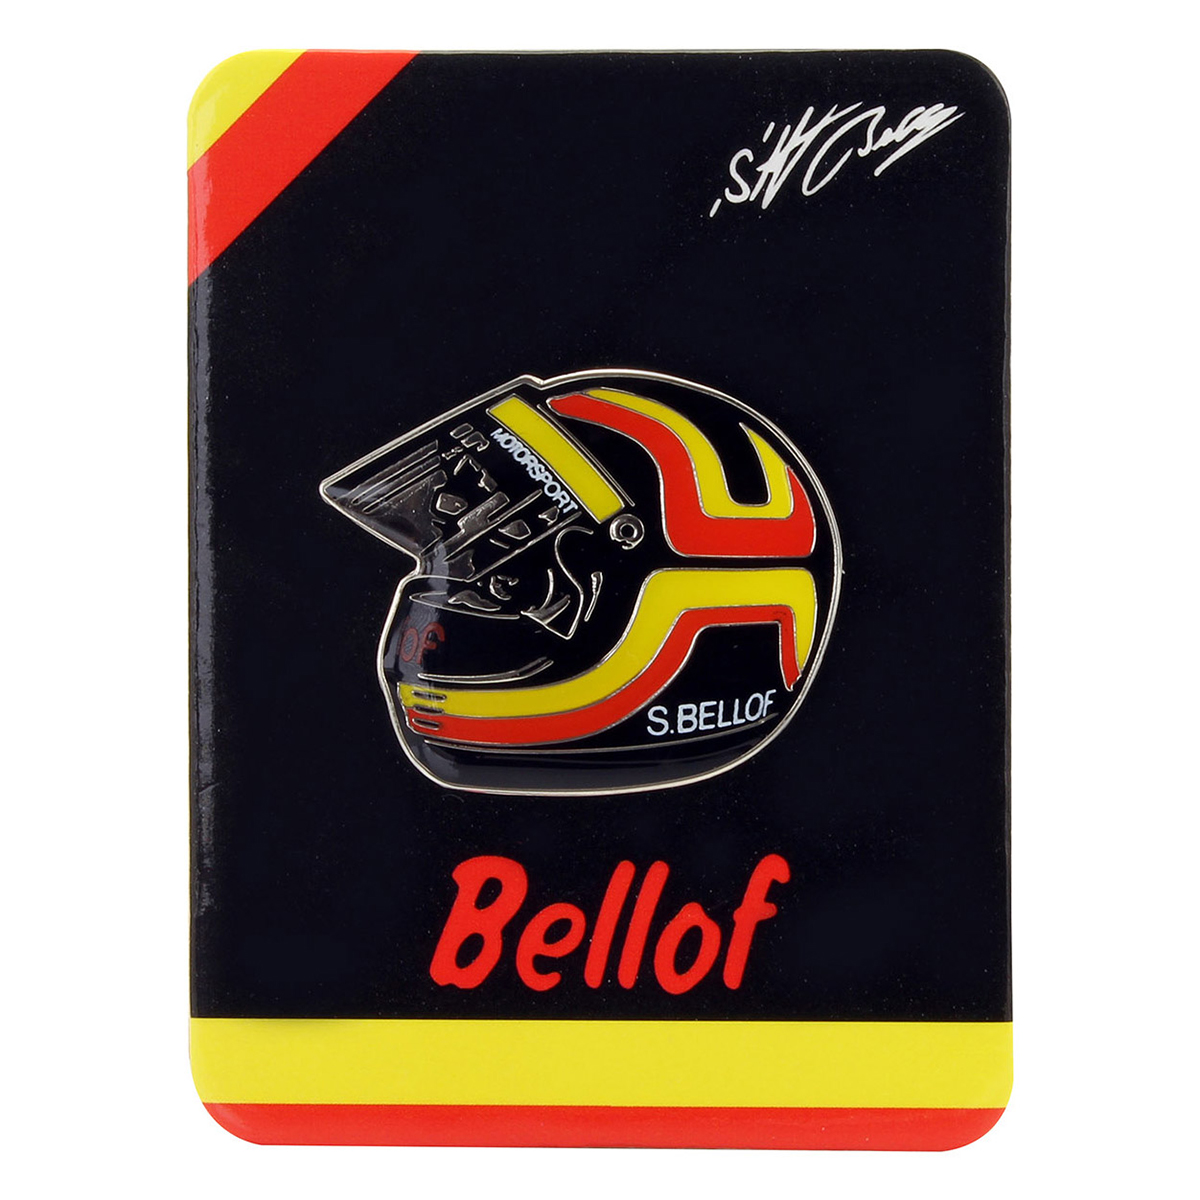 stefan-bellof-pin-helm